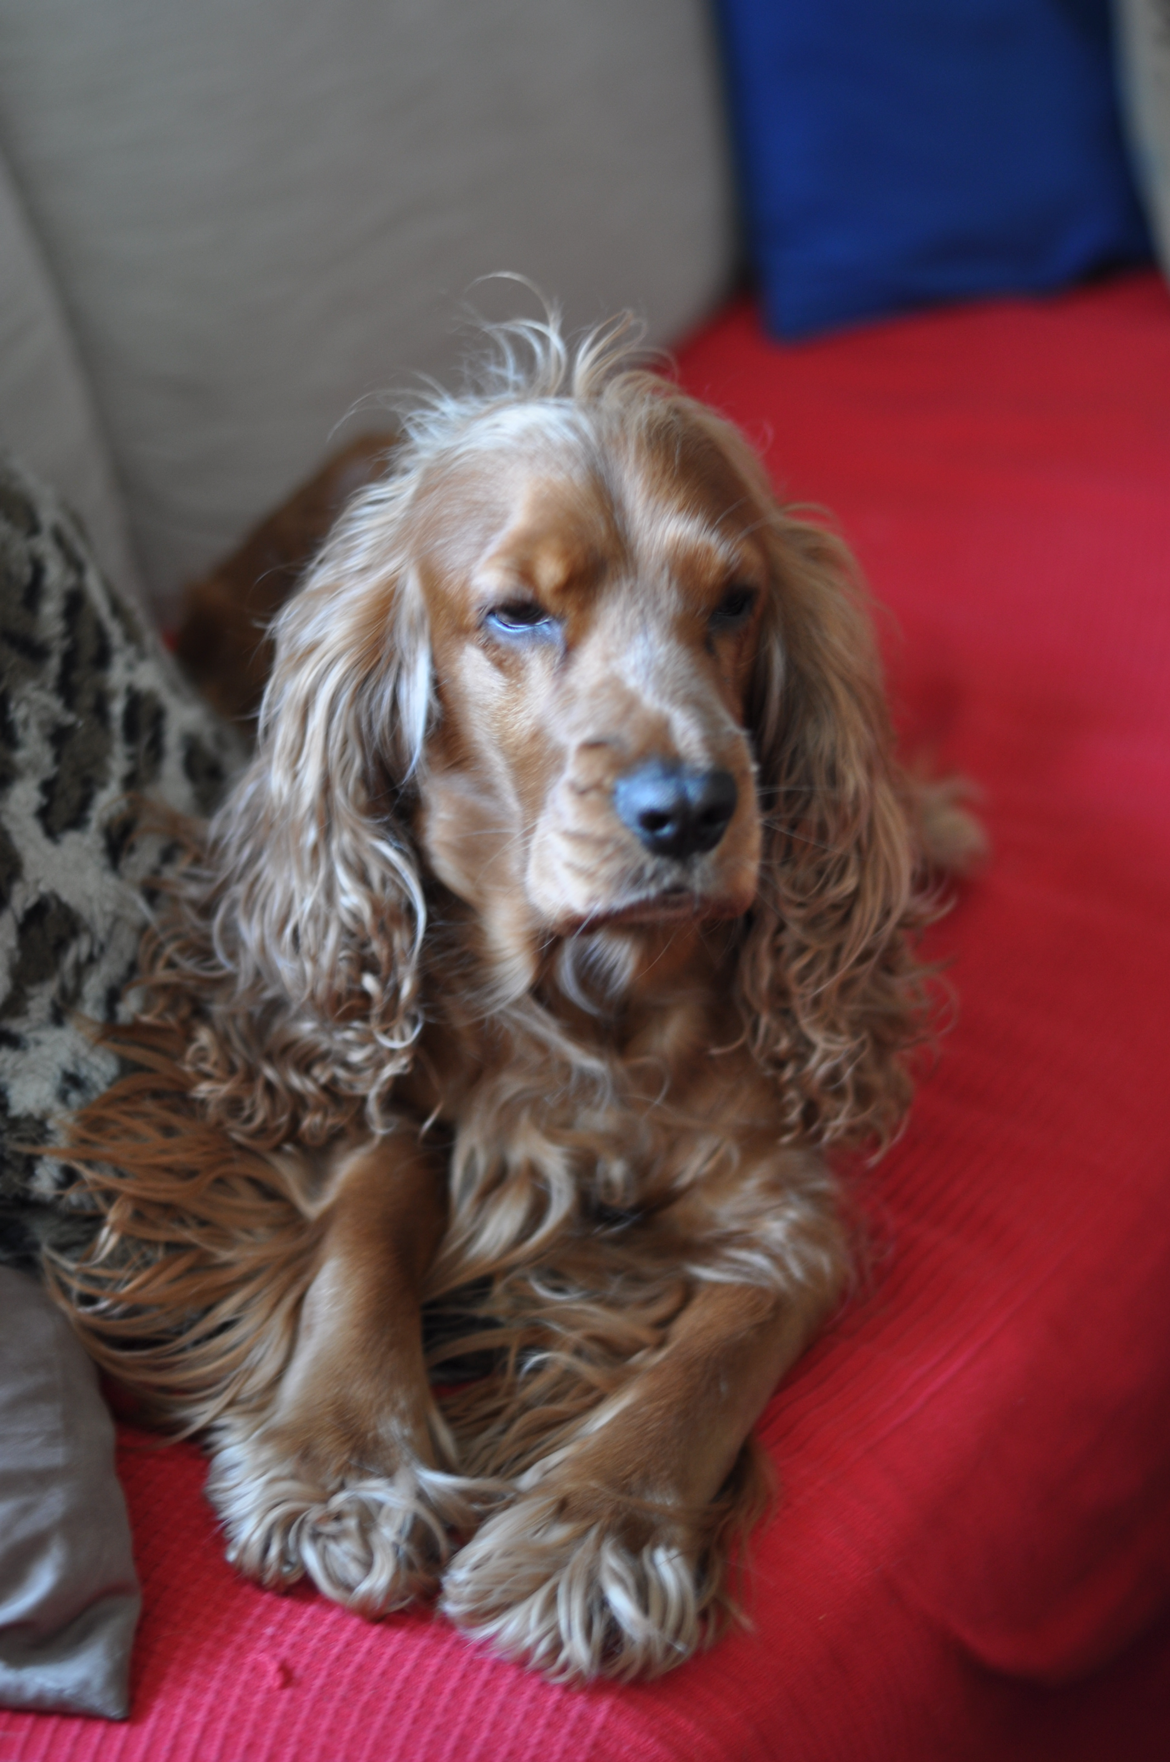 Naomella_How-many-lives-does-a-dog-have-blogpost